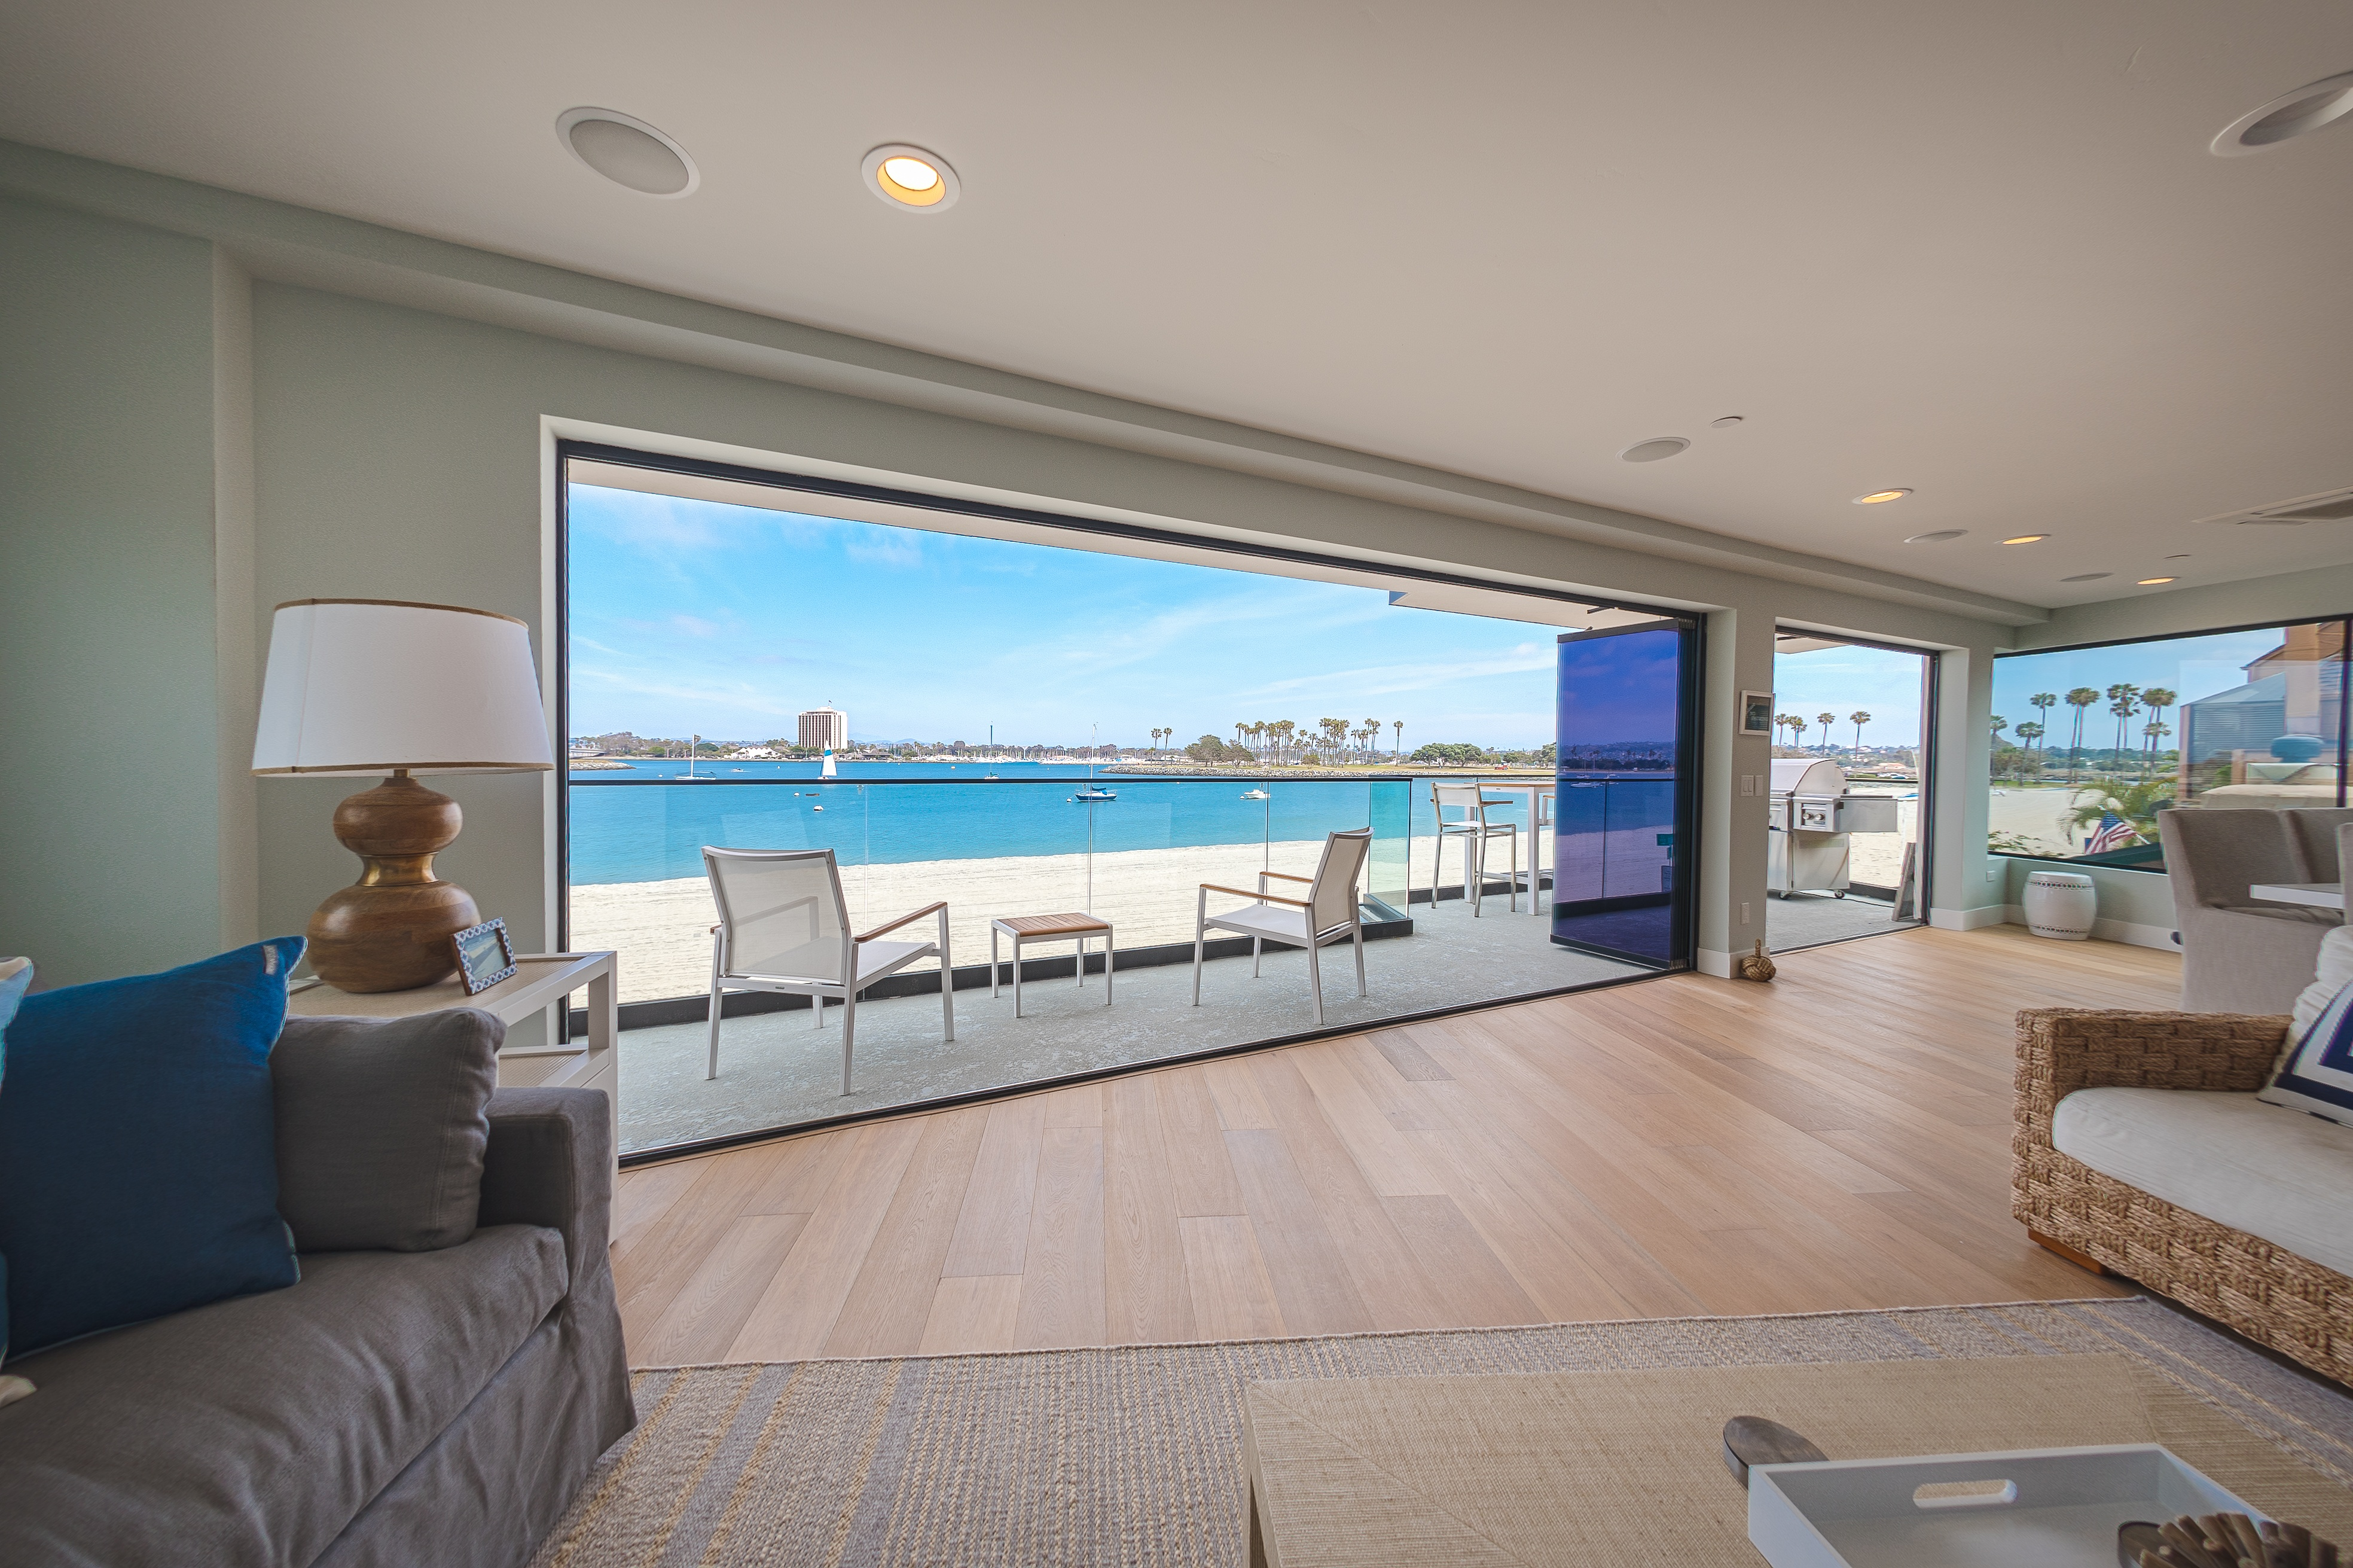 You dont have to be apple to enjoy frameless glass doors eventelaan Choice Image